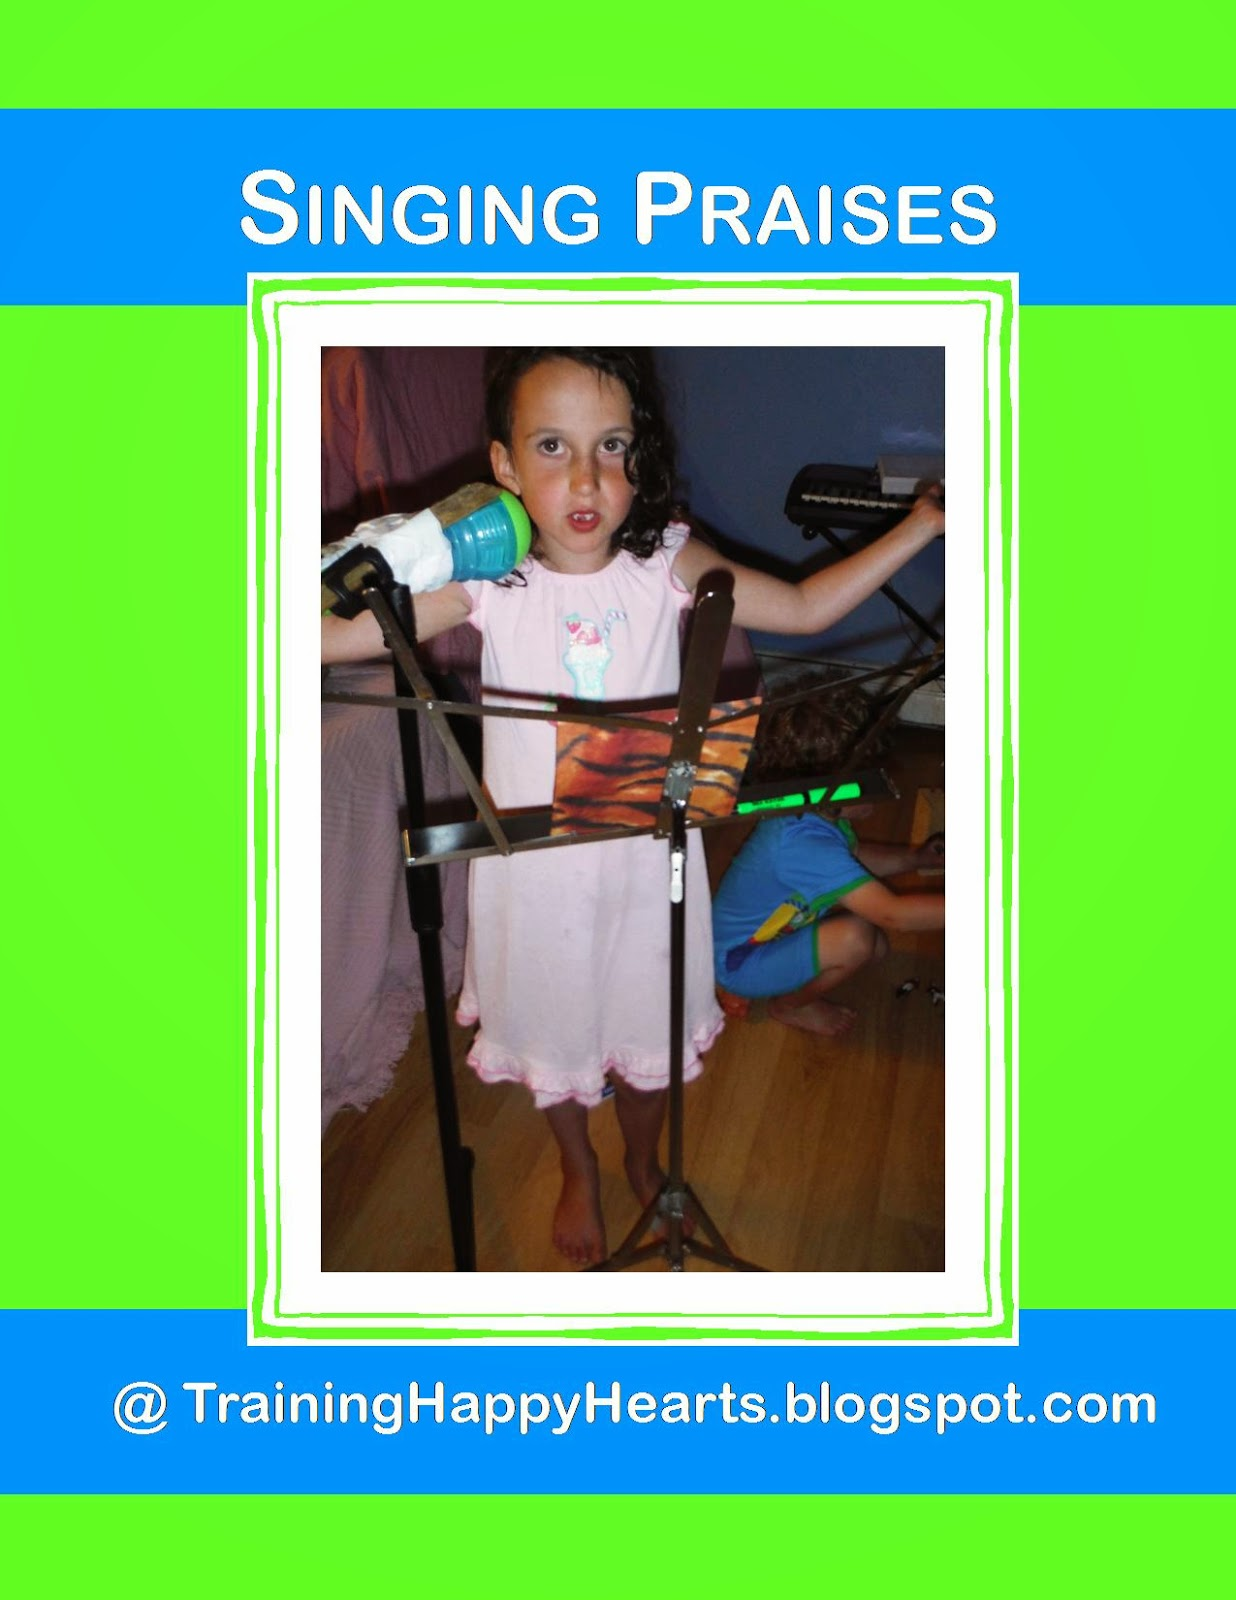 http://traininghappyhearts.blogspot.com/2014/08/3-gifts-that-made-my-girl-sing-praise.html